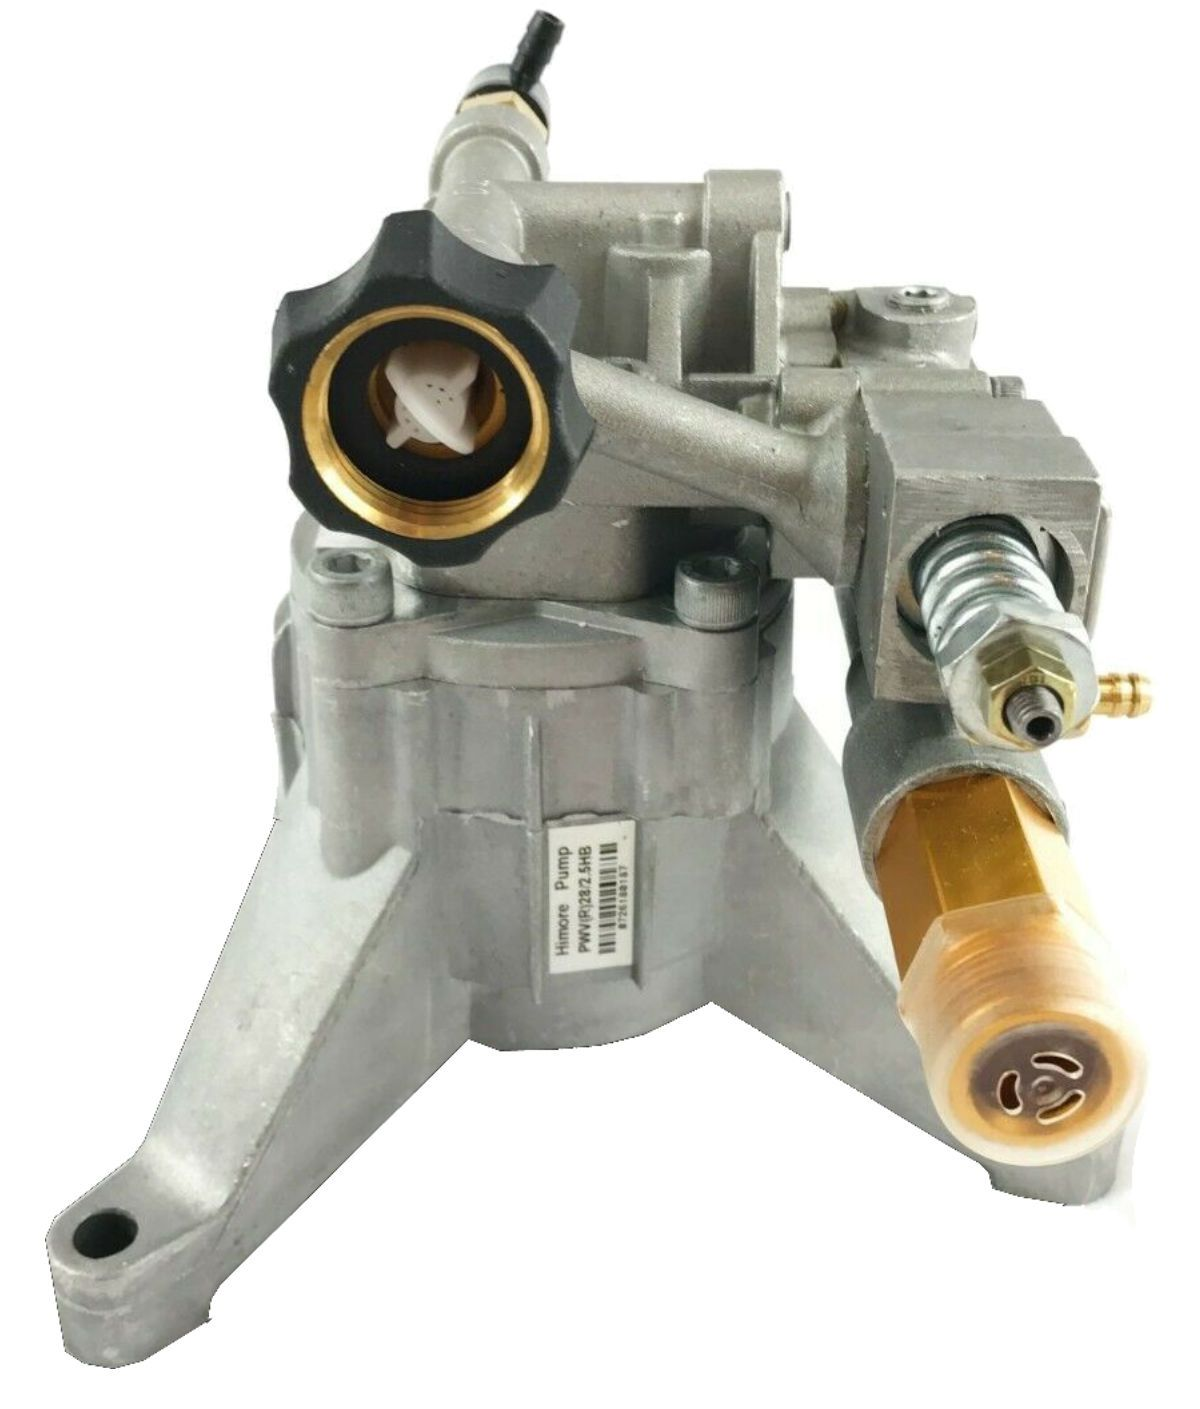 2700 PSI PRESSURE WASHER WATER PUMP Wel-Bilt M157720